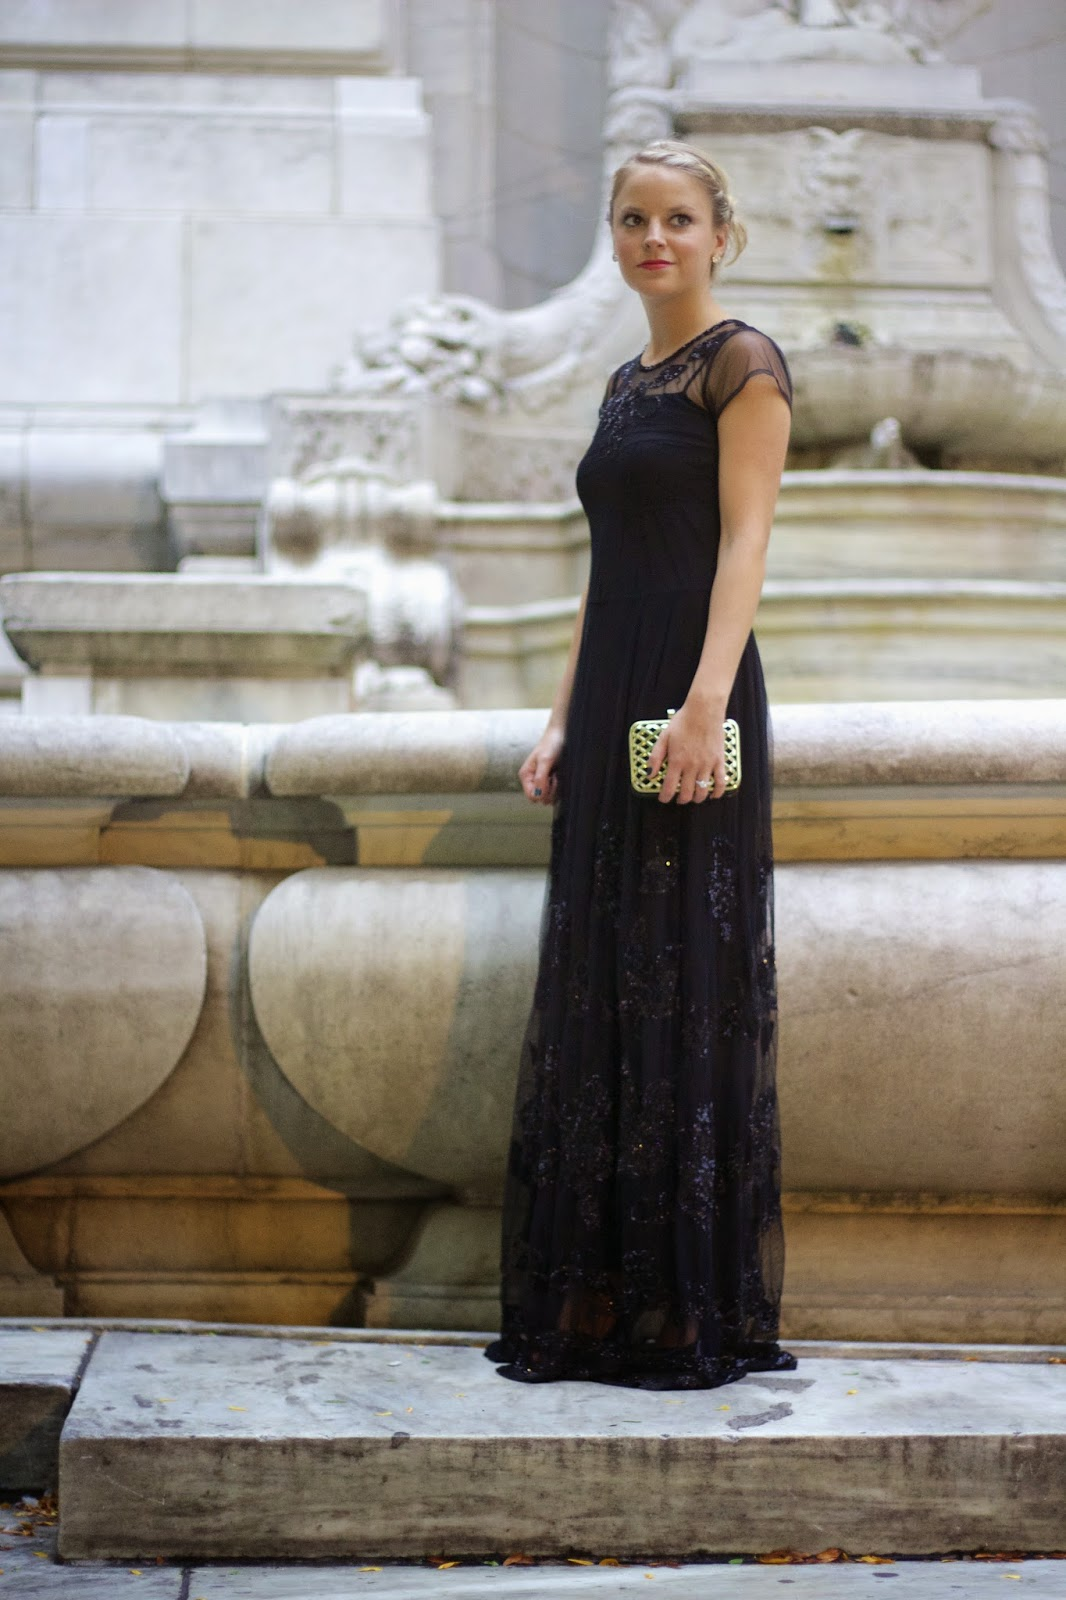 SEQUINED MAXI DRESS - Styled Snapshots